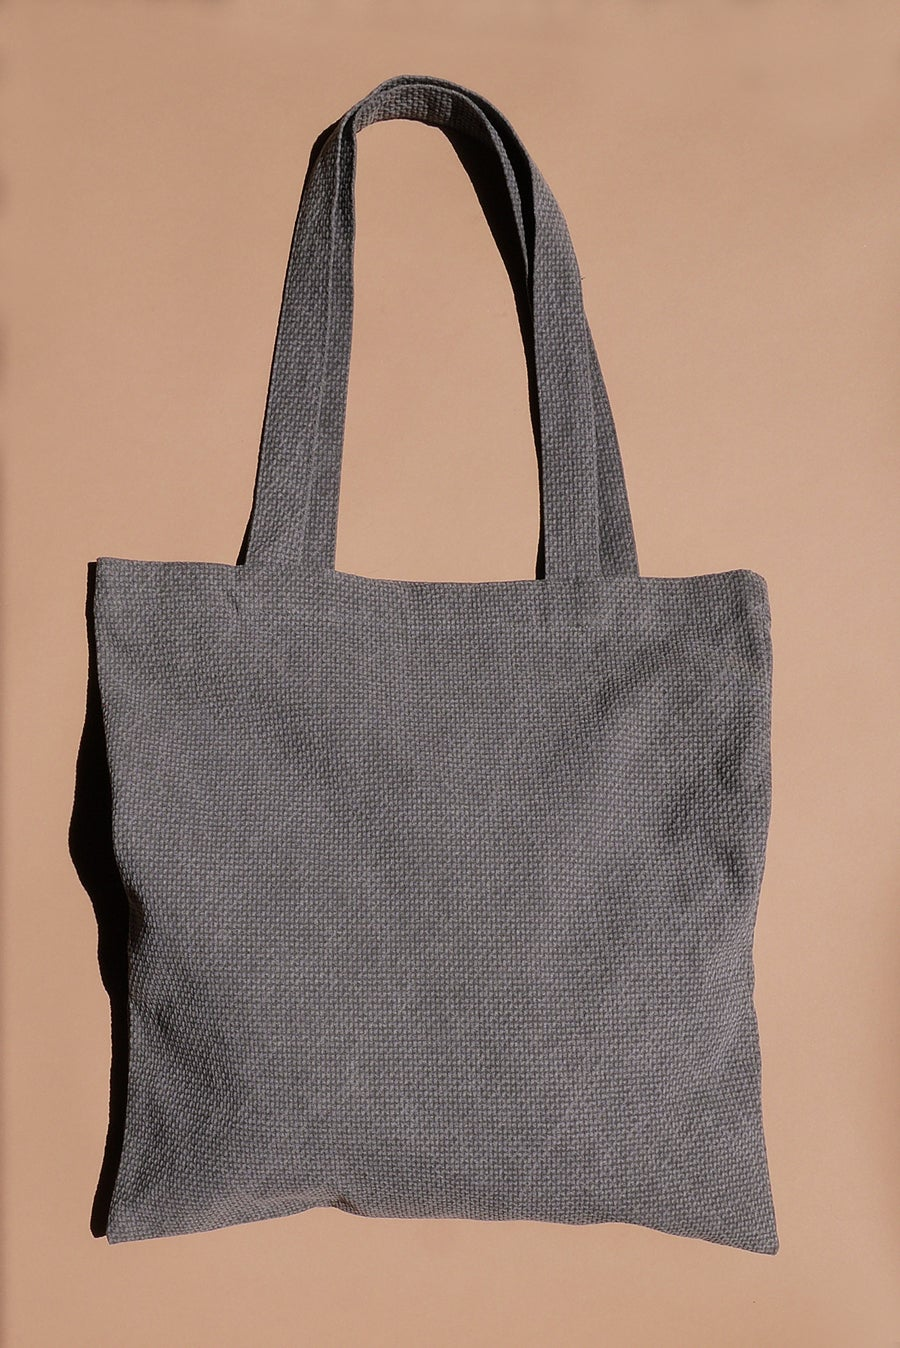 Image of Carry All Tote Bag - Grey